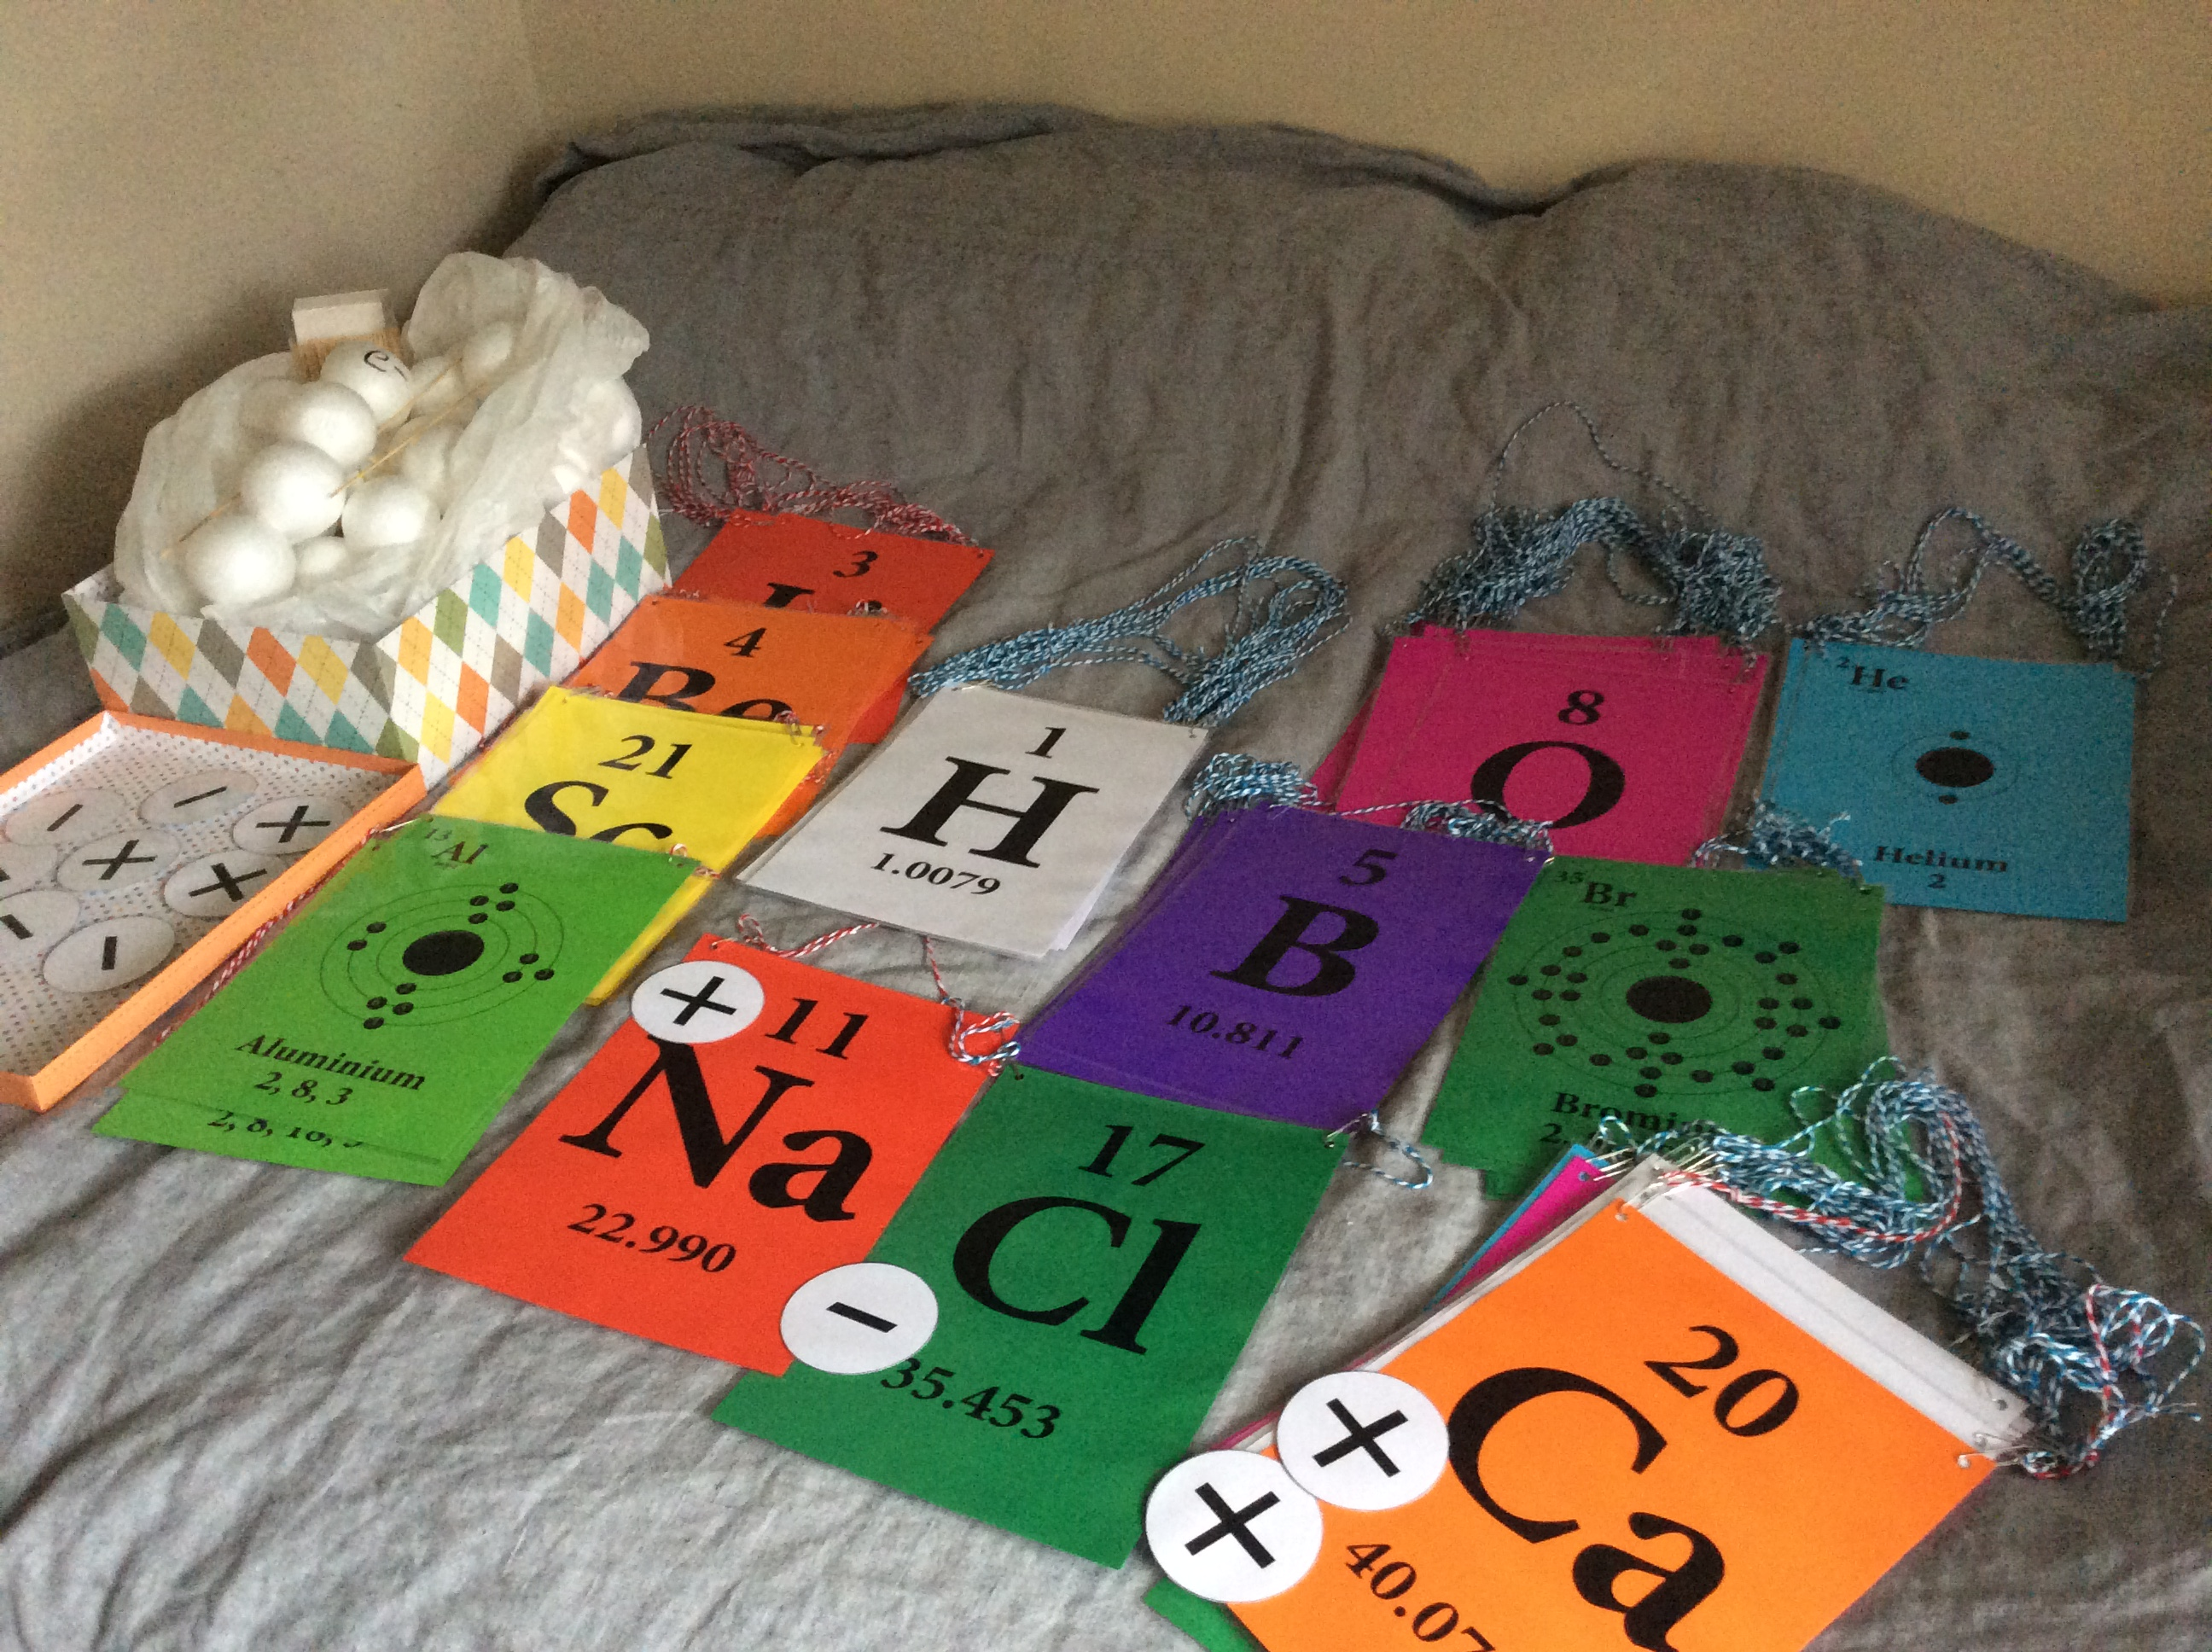 My element rules sonia hankova my element rules is a teaching resource i developed to help students understand classification of matter organisation of elements in the periodic table urtaz Choice Image